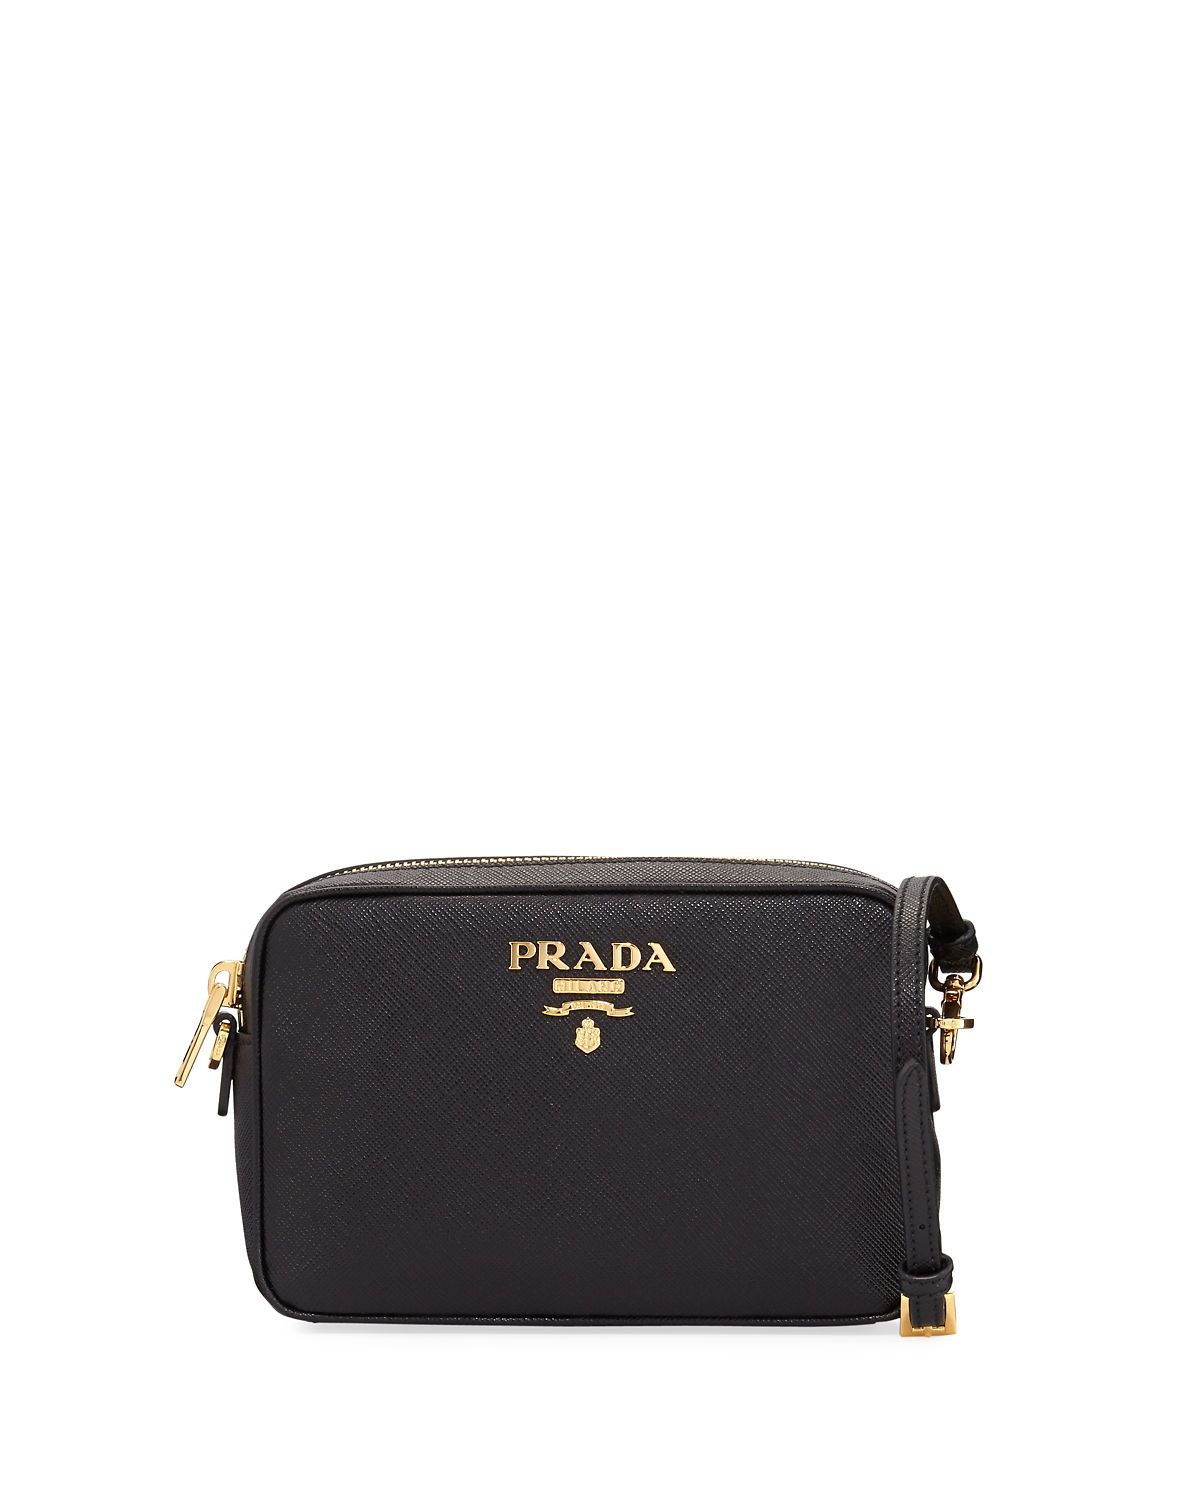 3448c452a872 Saffiano Leather Camera Bag Prada | Stanford Center for Opportunity ...